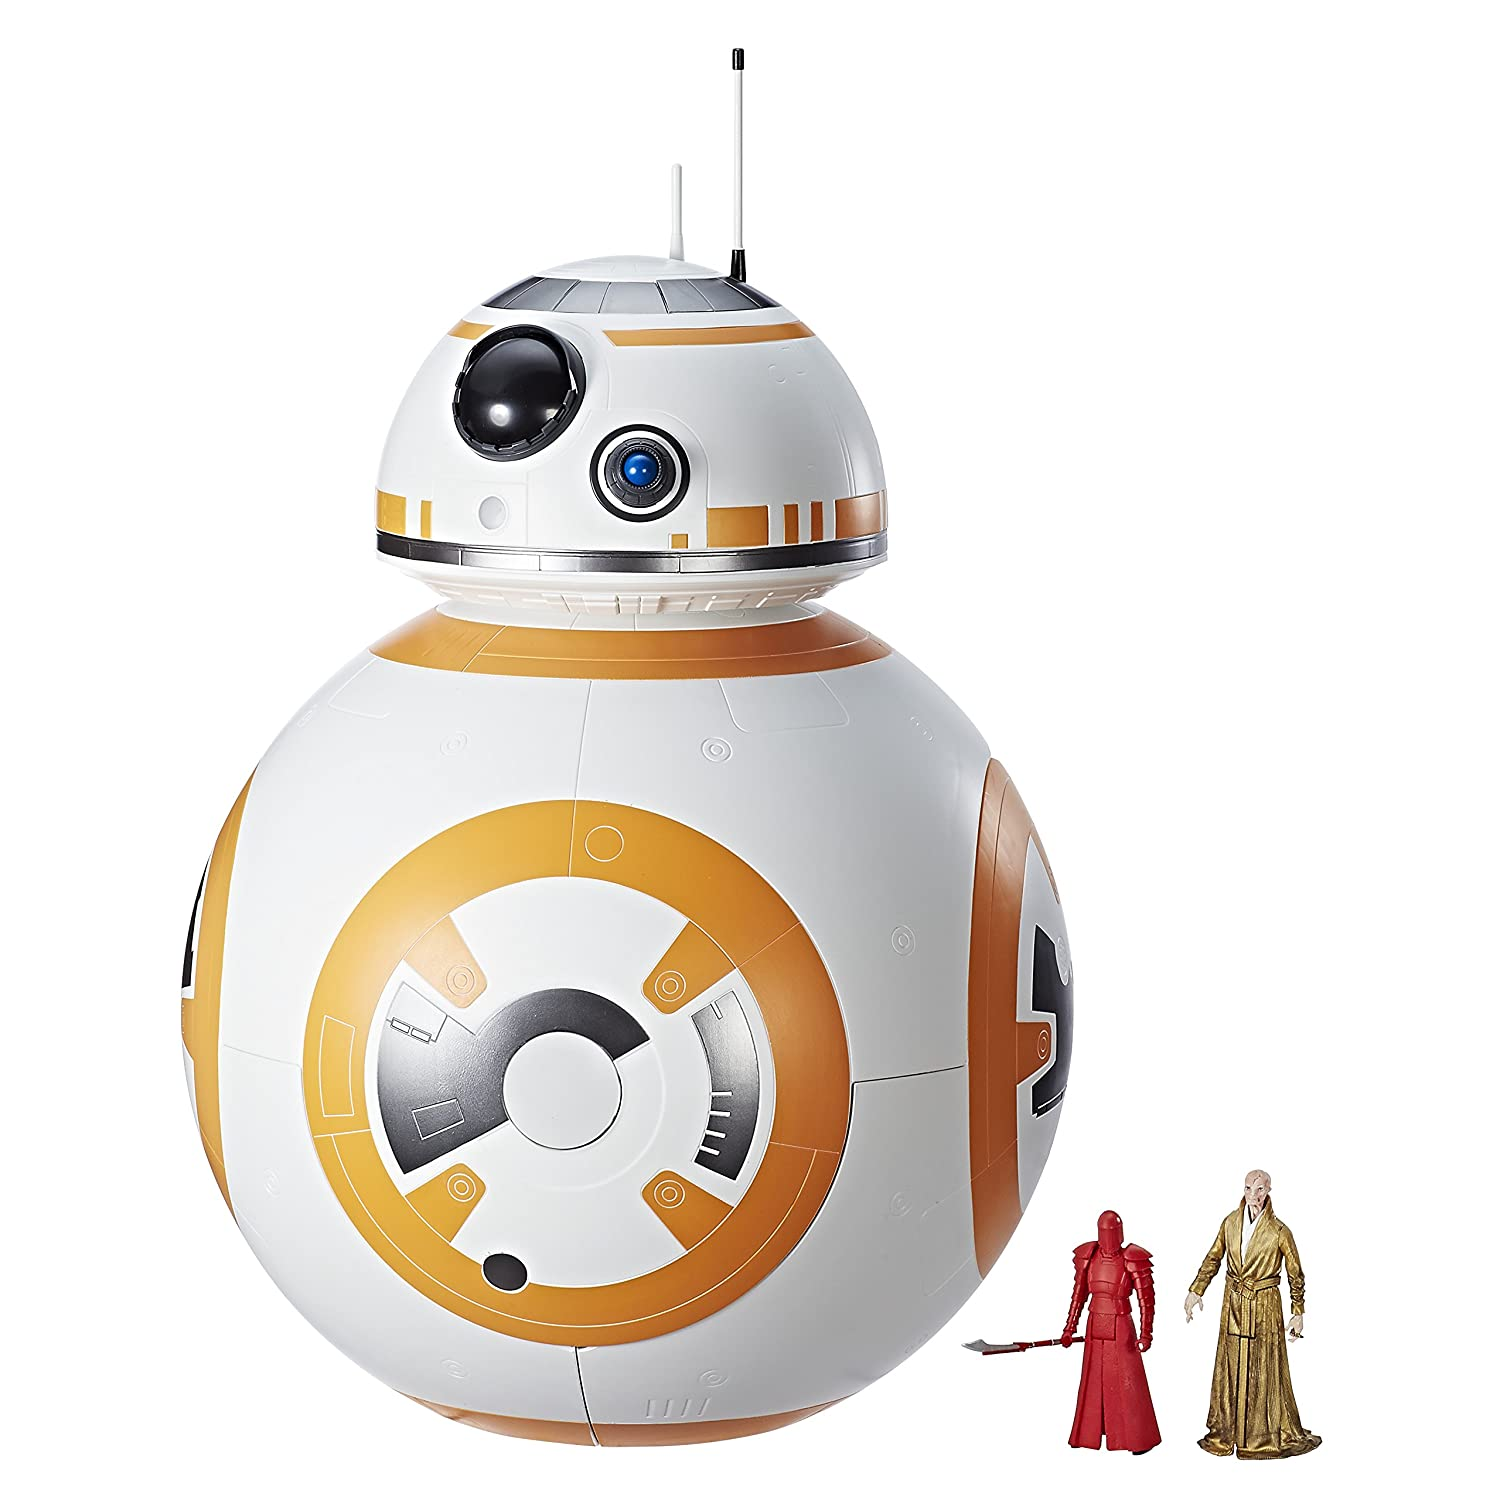 Star Wars Force Link BB-8 2-in-1 2-in-1 2-in-1 Mega Playset (without Force Link) TOY e8f492